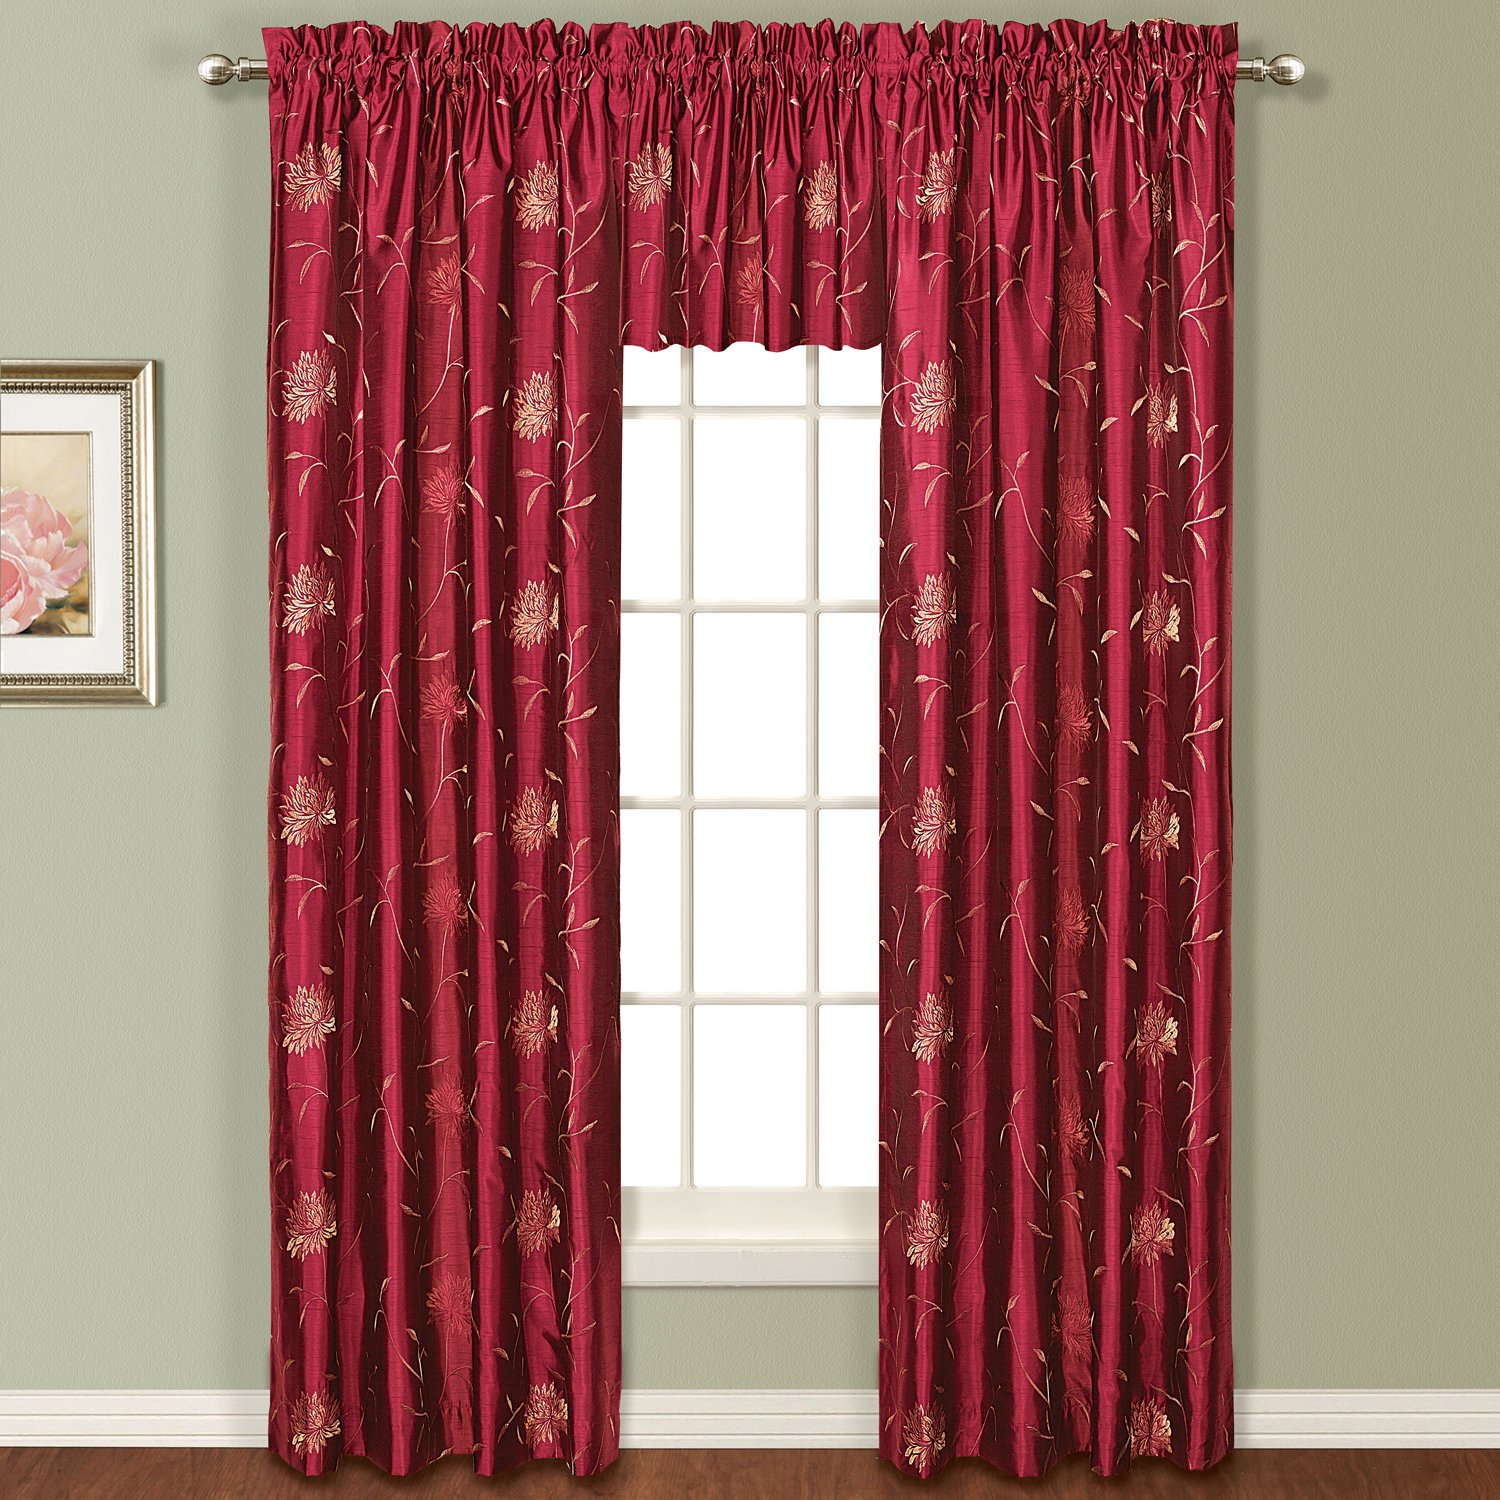 United Curtain Avalon Window Curtain Panel, 54 by 63-Inch, Burgundy